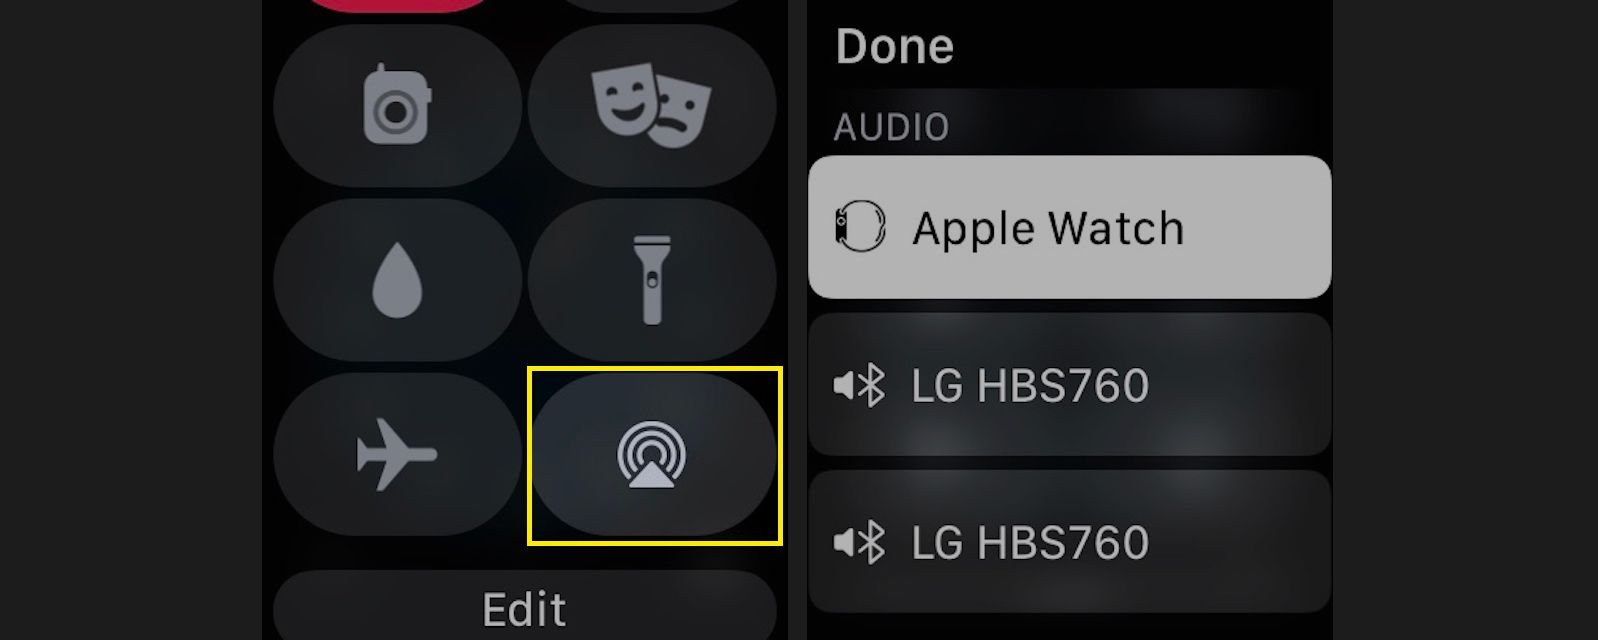 Tap the AirPlay icon (circles with a triangle) to control AirPlay's sound output.